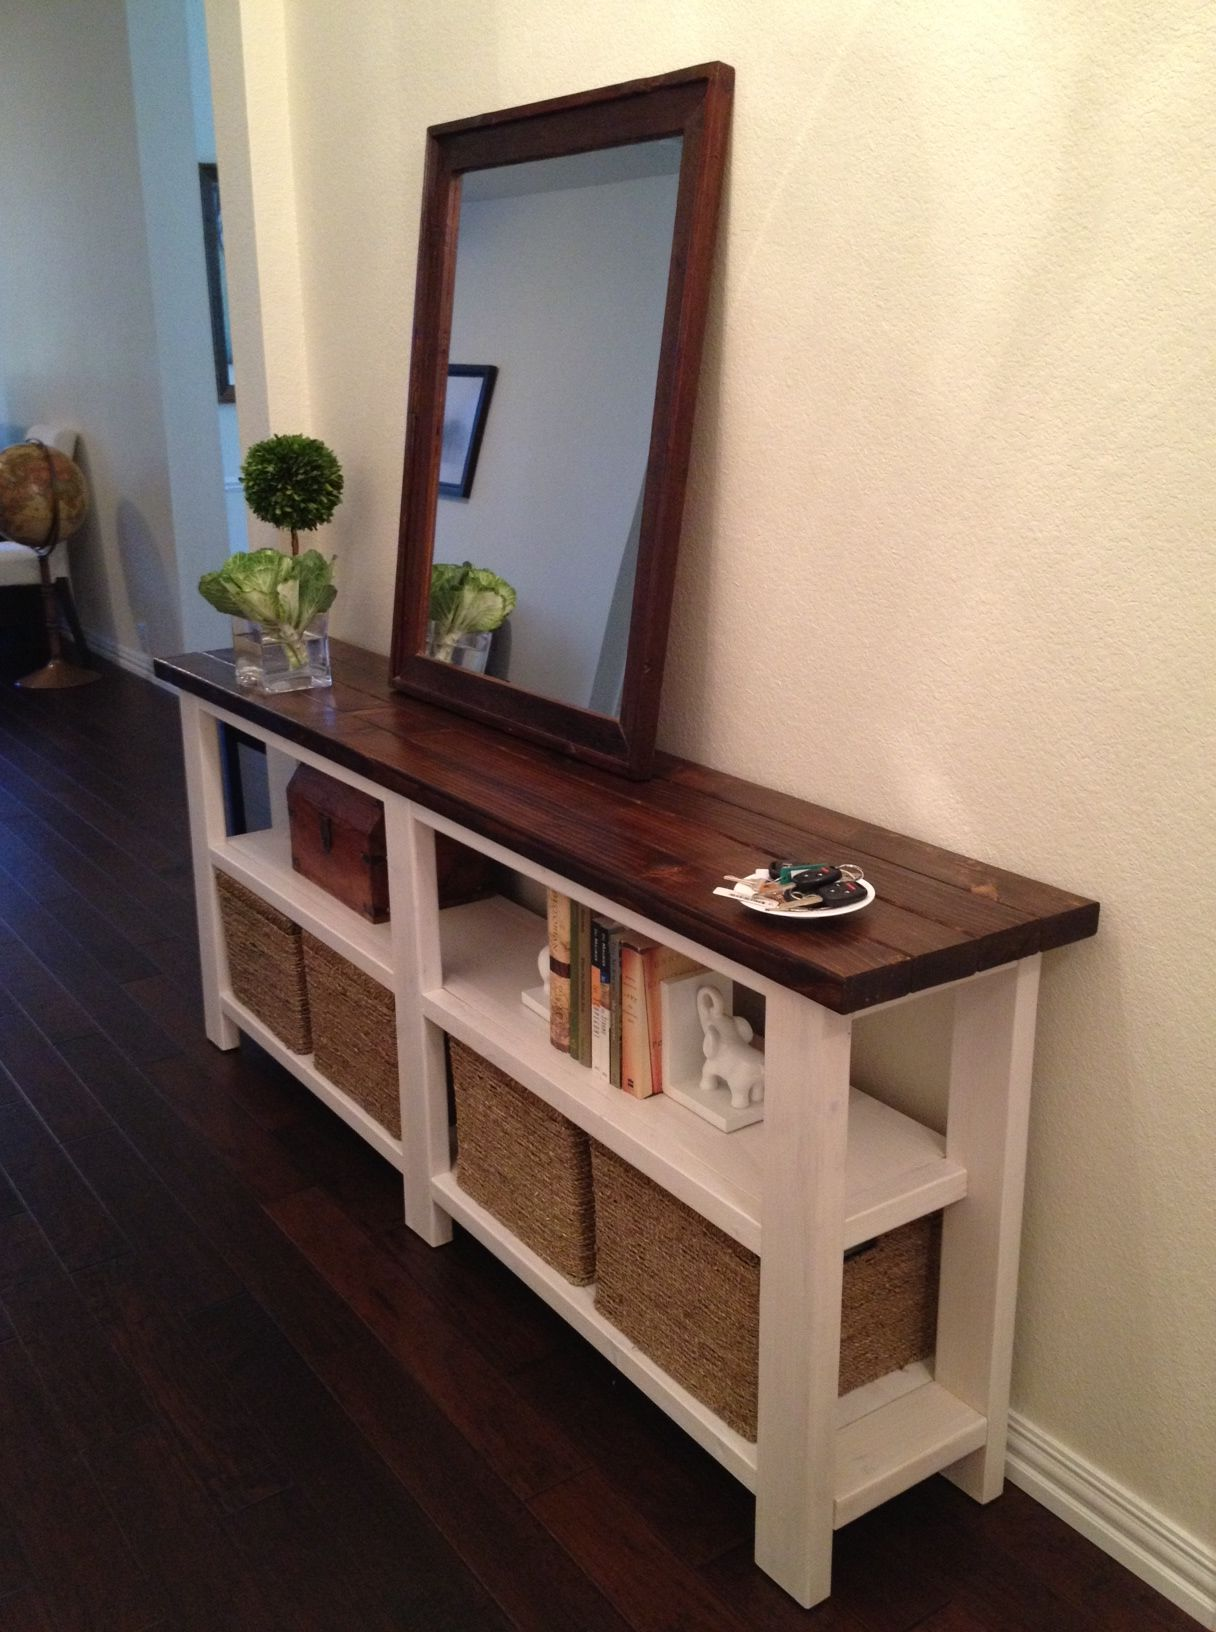 Ana White's rustic x table - without the x sides and stain/paint mix